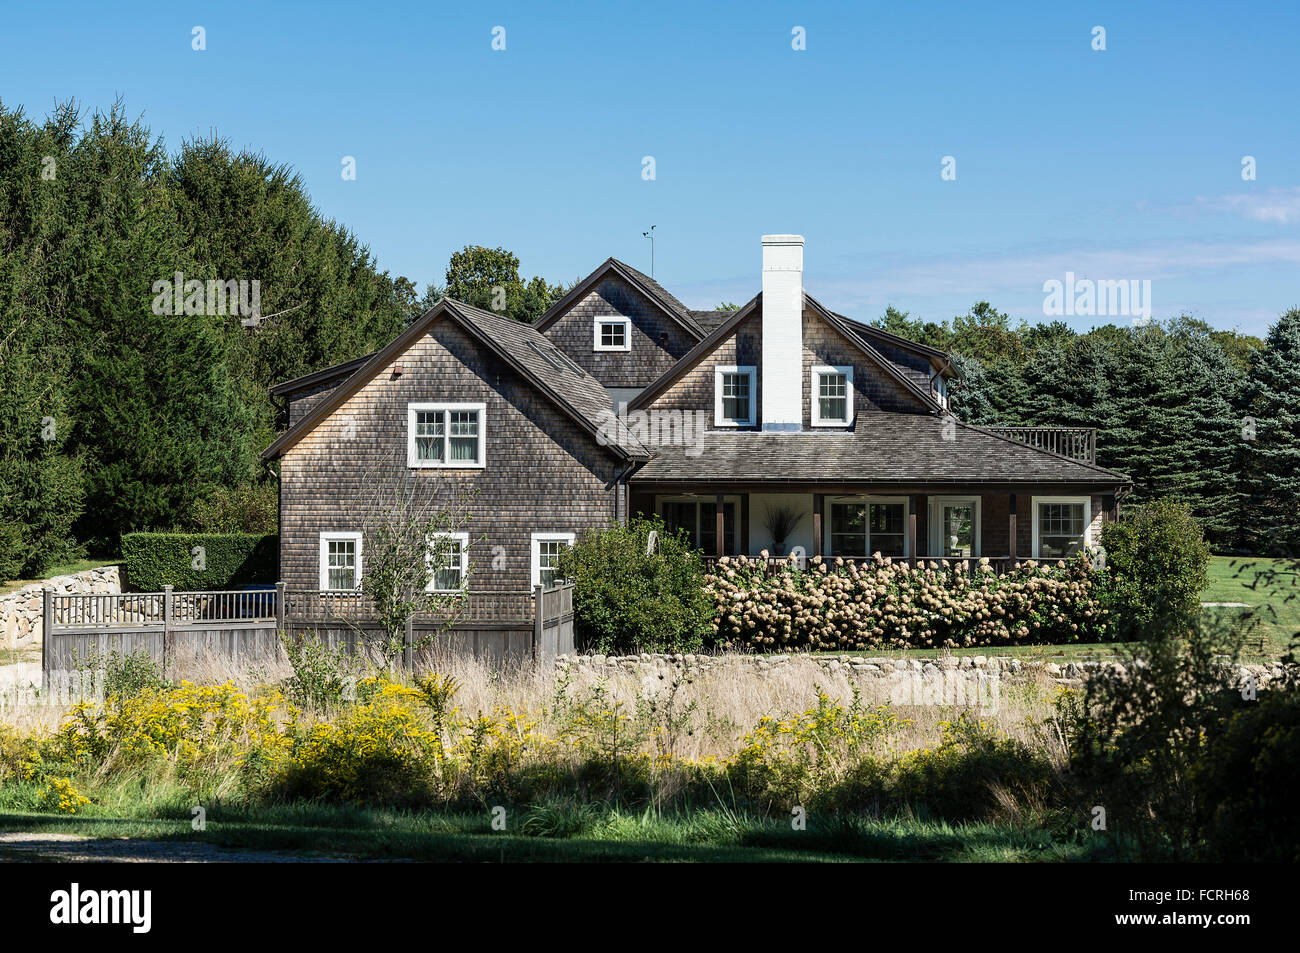 cape cod style home photos cape cod style home images alamy rh alamyimages fr Bungalow Style Homes Craftsman- style Home